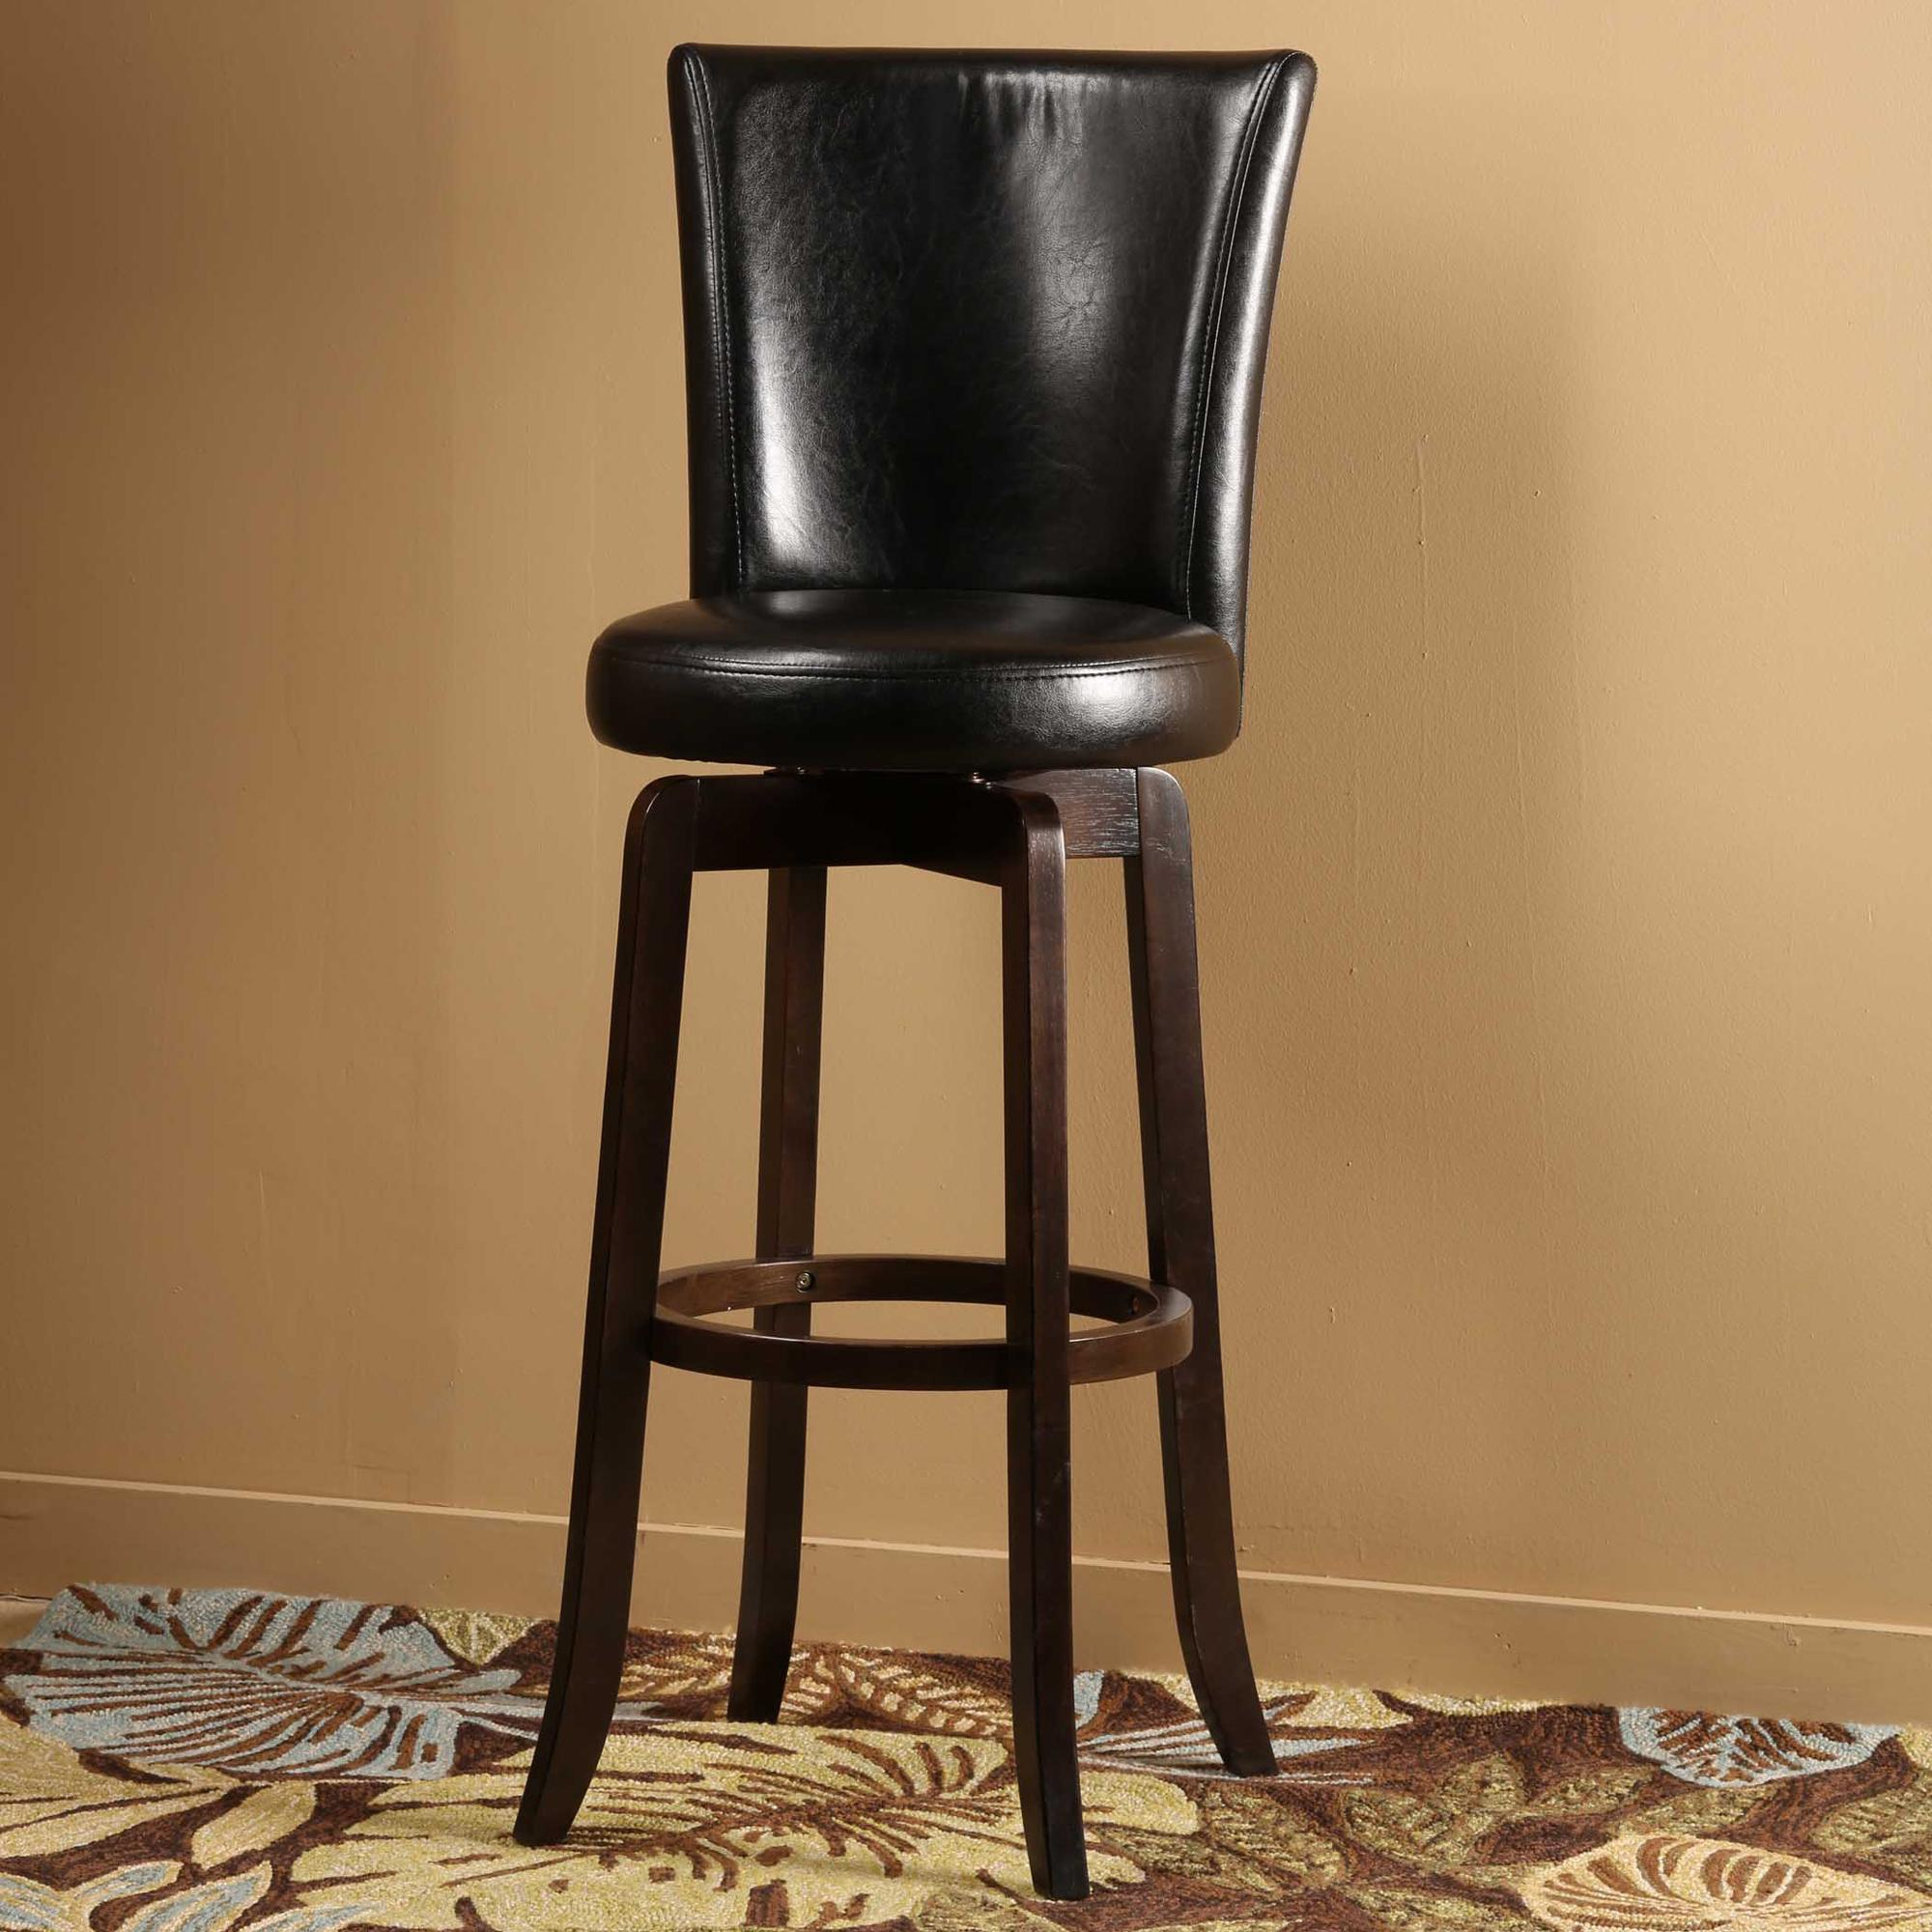 Wood Stools Copenhagen Swivel Bar Stool by Hillsdale  : products2Fhillsdale2Fcolor2Fwood20stools4951 826 b0 from wolffurniture.com size 2000 x 2000 jpeg 334kB